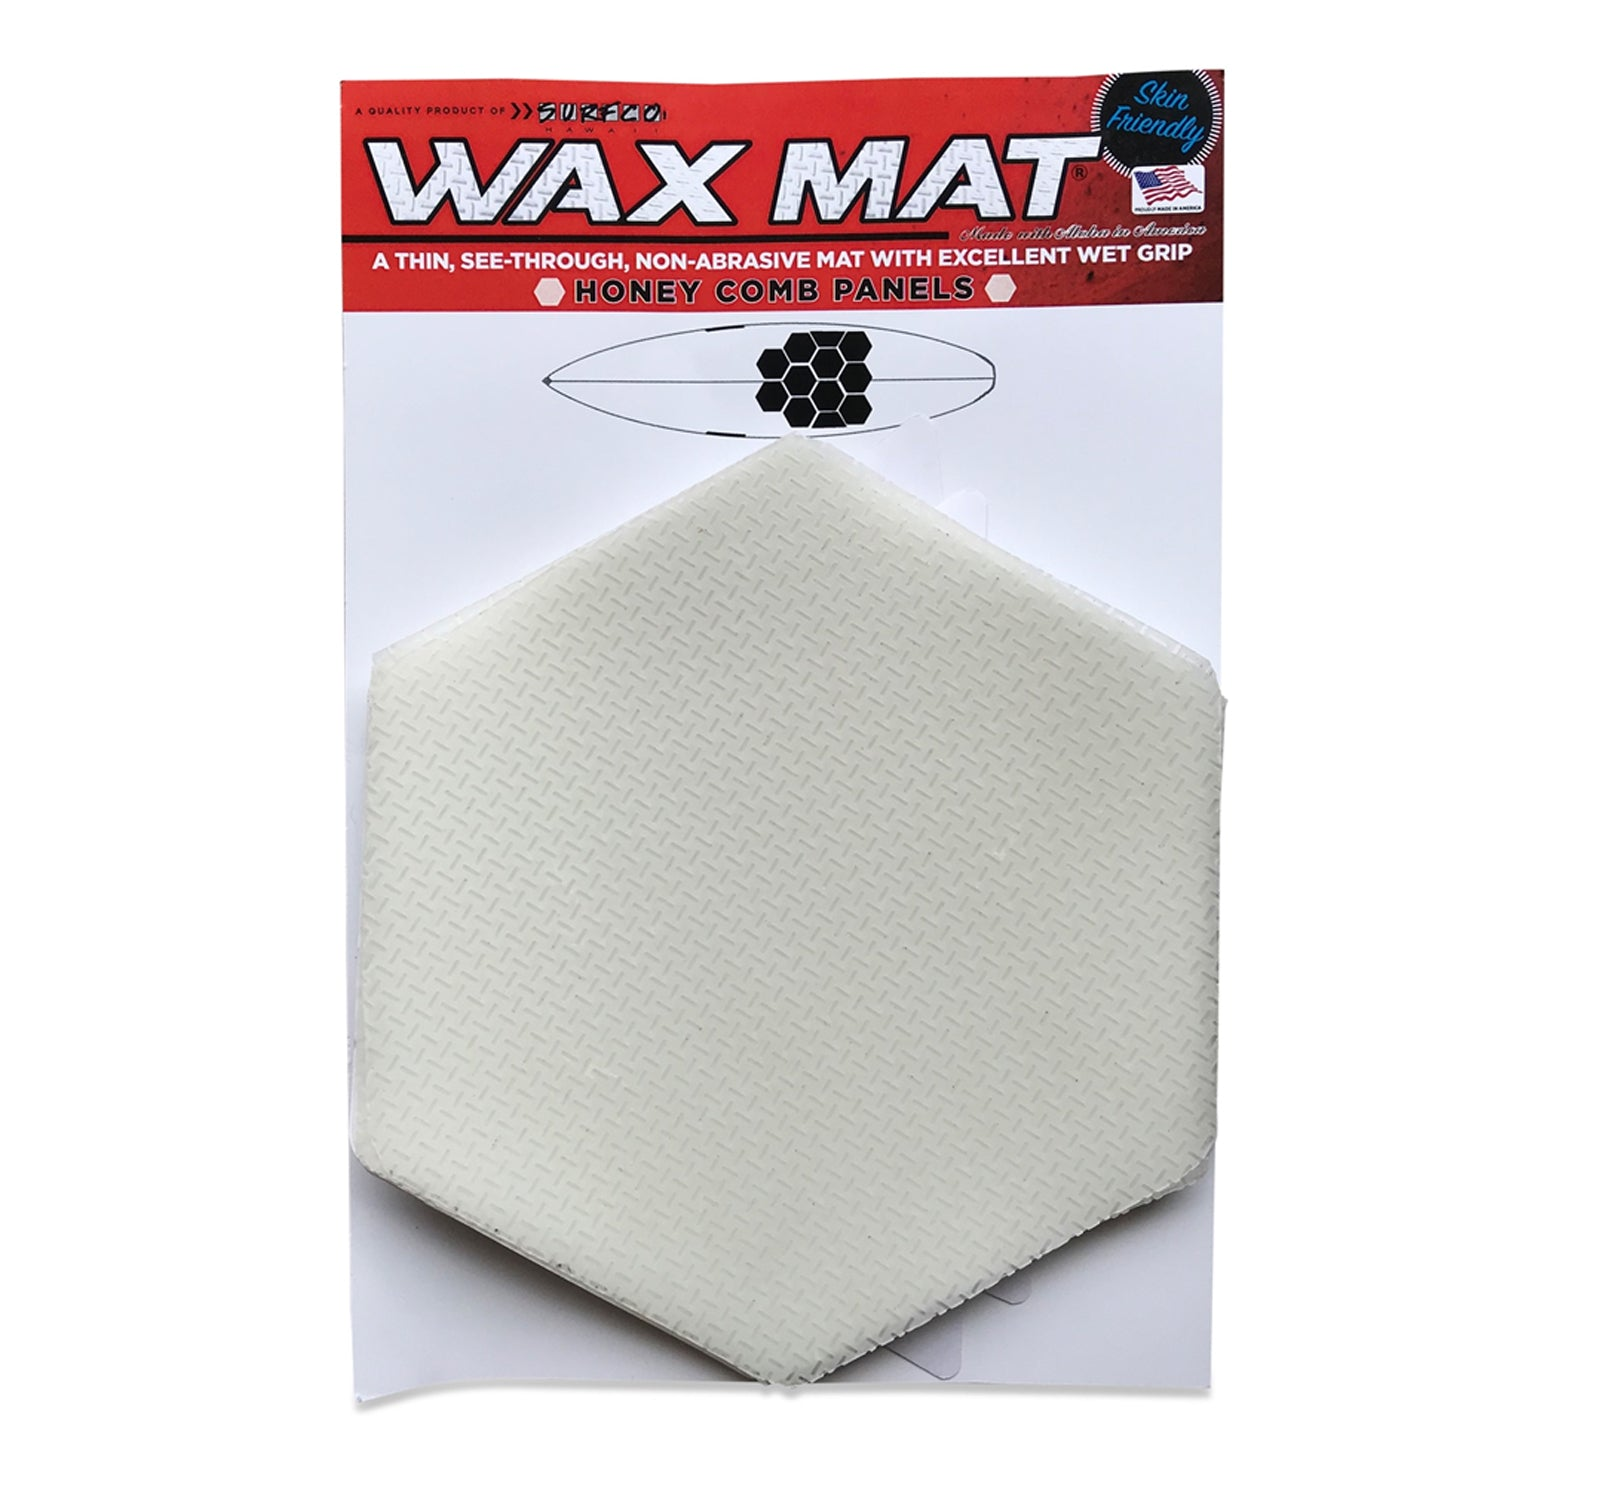 Wax Mat Honey Comb Kit (6 Panels, 2 Half Panels)